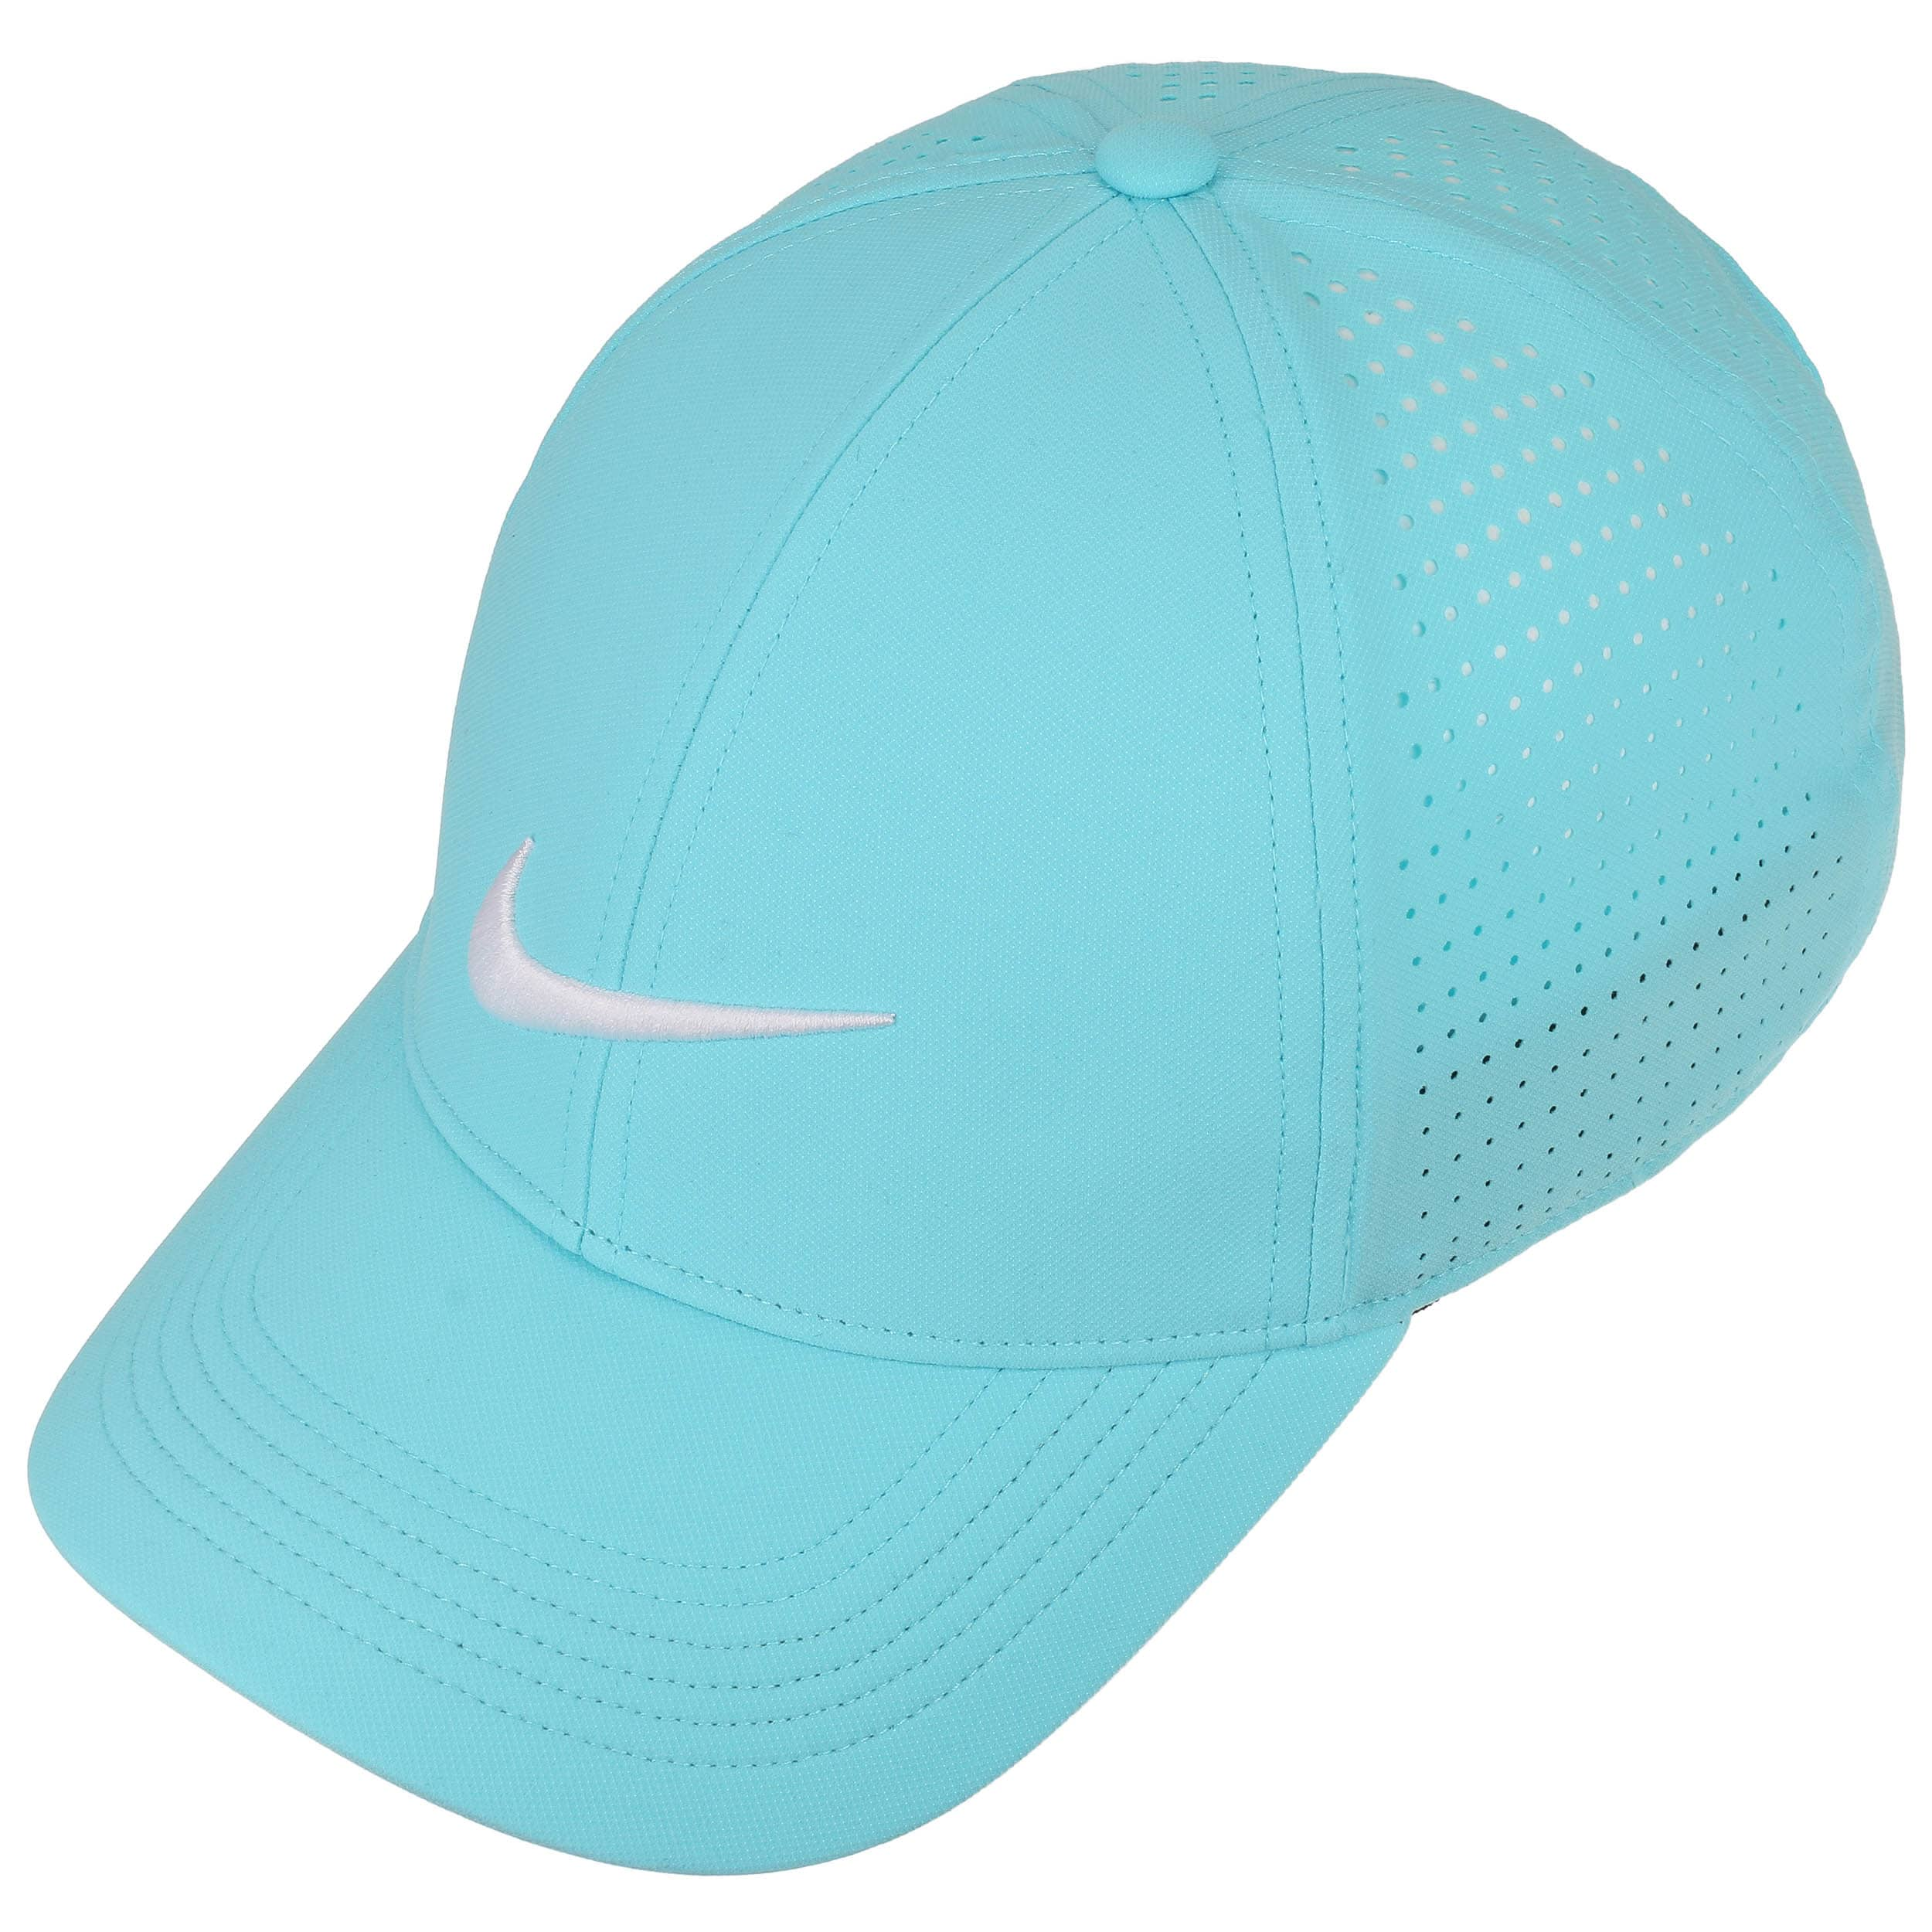 d1f9784d66a ... Legacy 91 Perf Strapback Cap by Nike - turquoise 1 ...